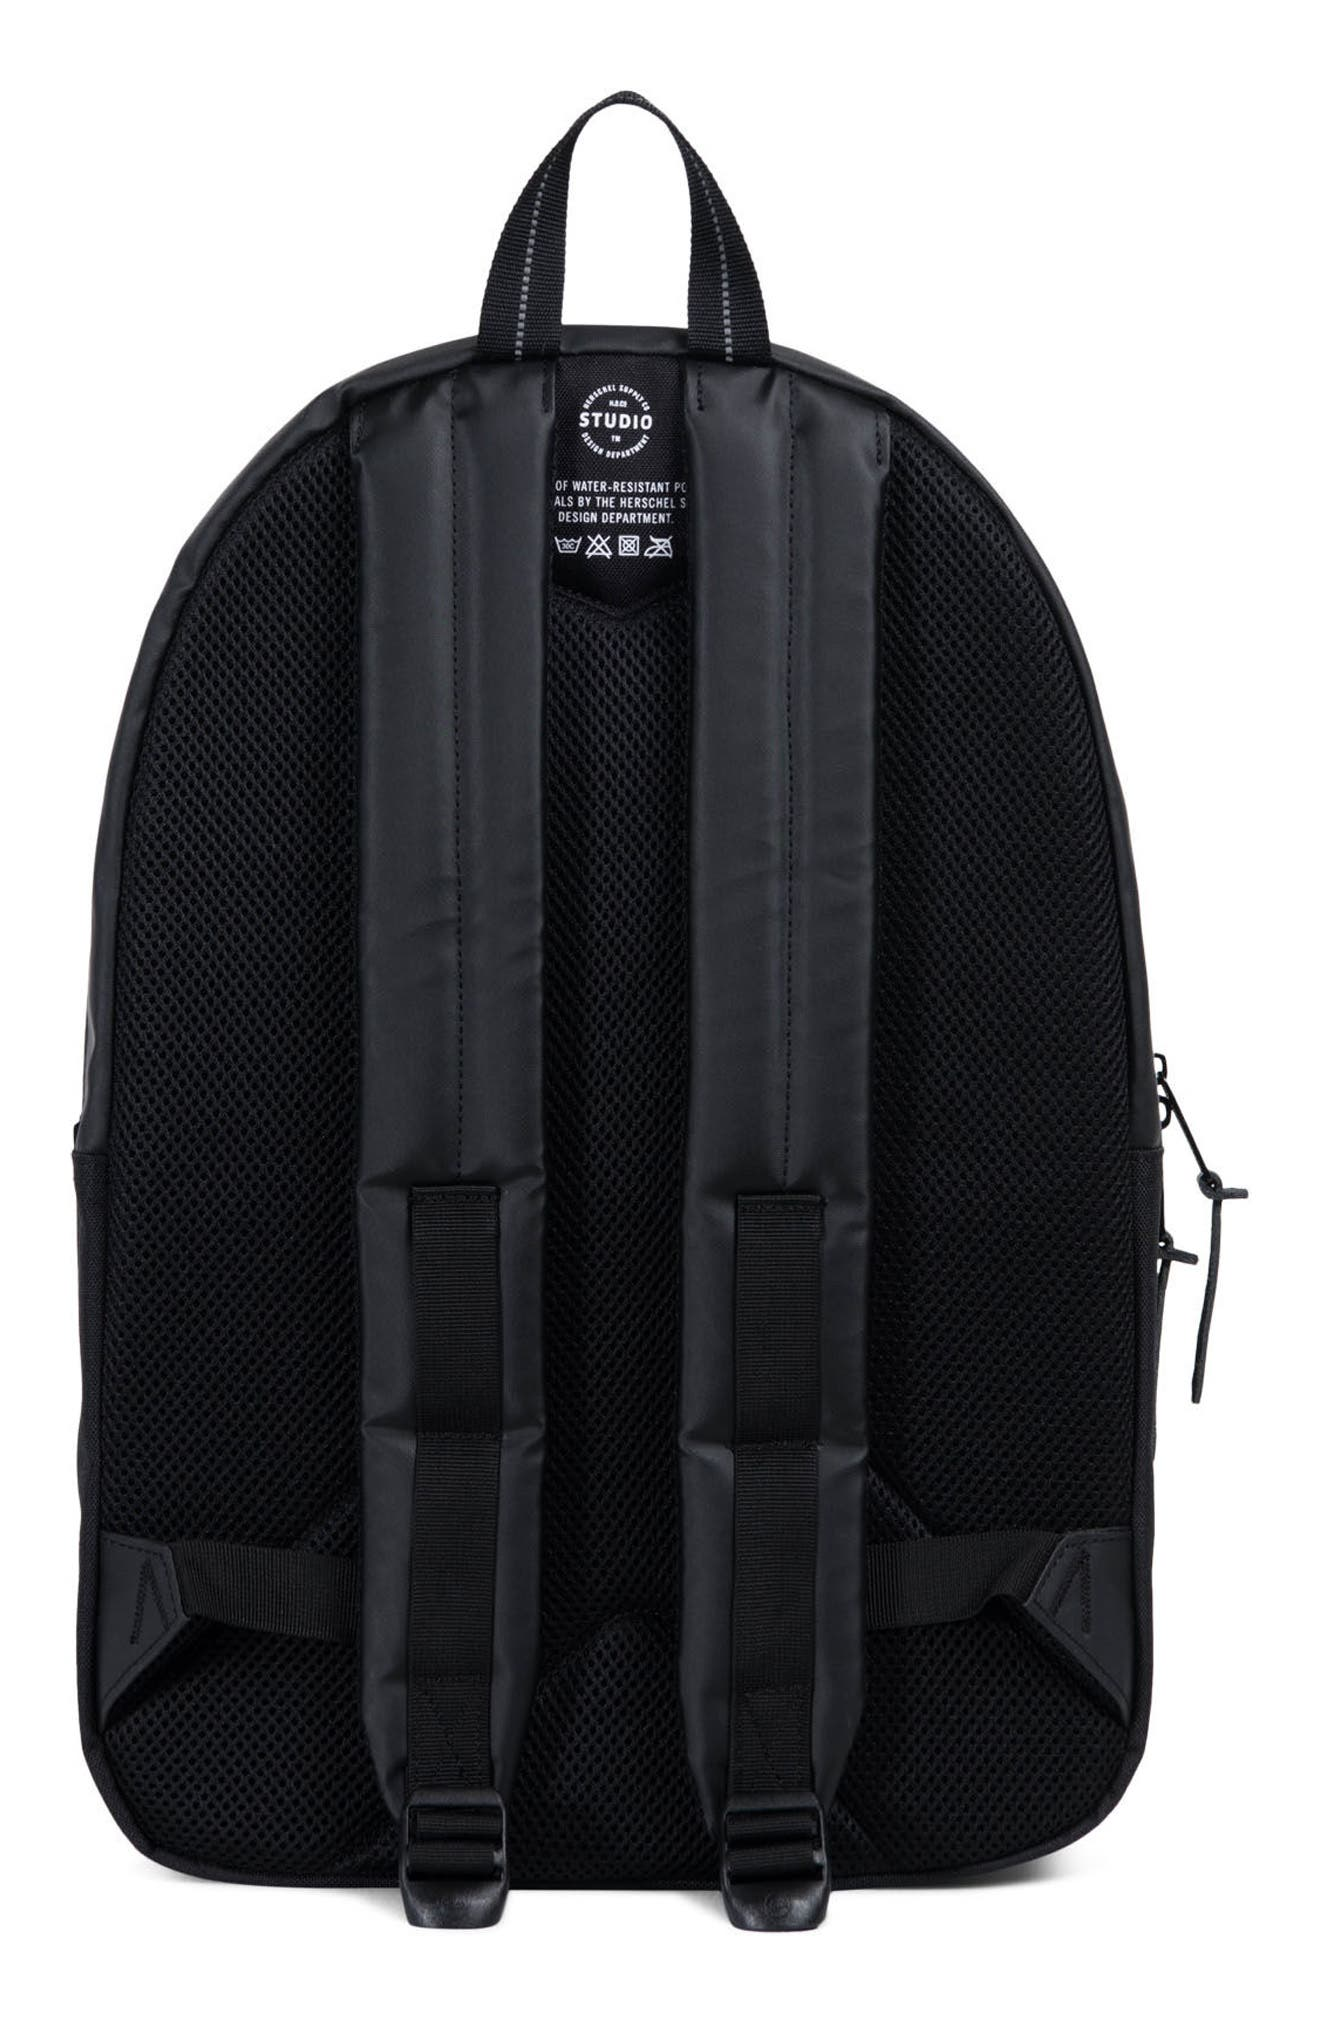 Ruskin Studio Collection Backpack,                             Alternate thumbnail 4, color,                             007